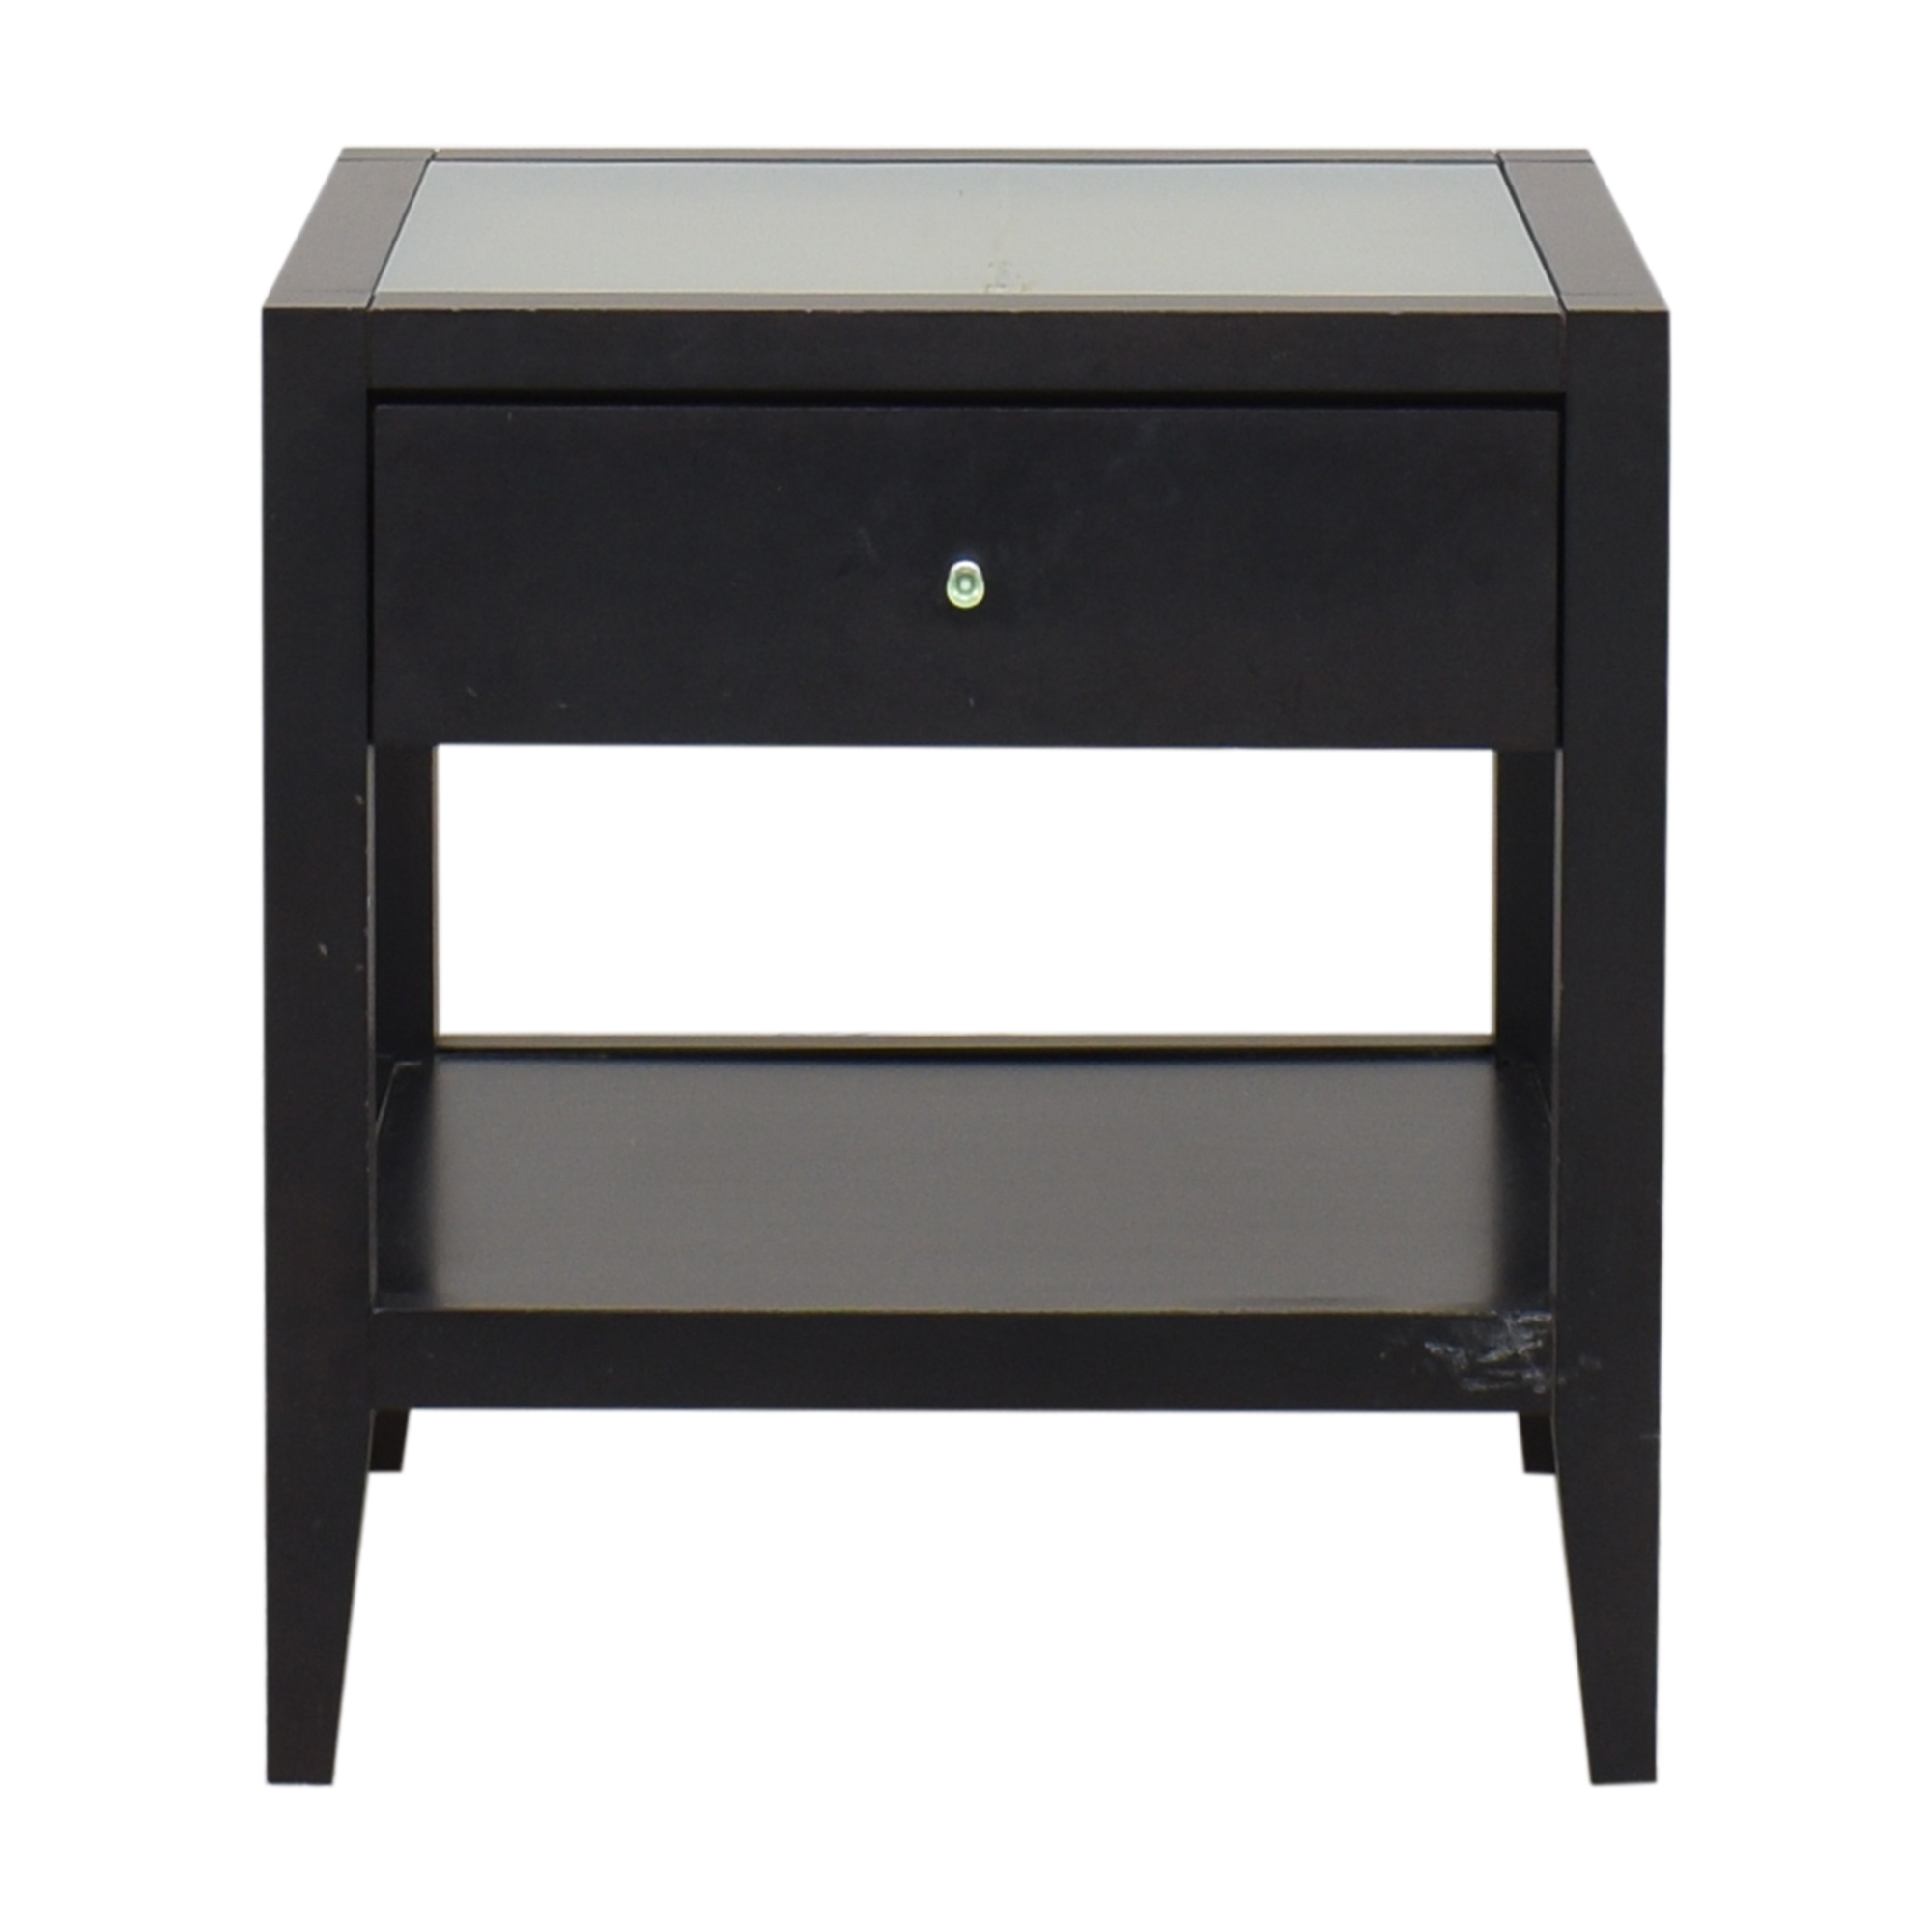 Crate & Barrel Crate & Barrel Nightstand by Baronet used